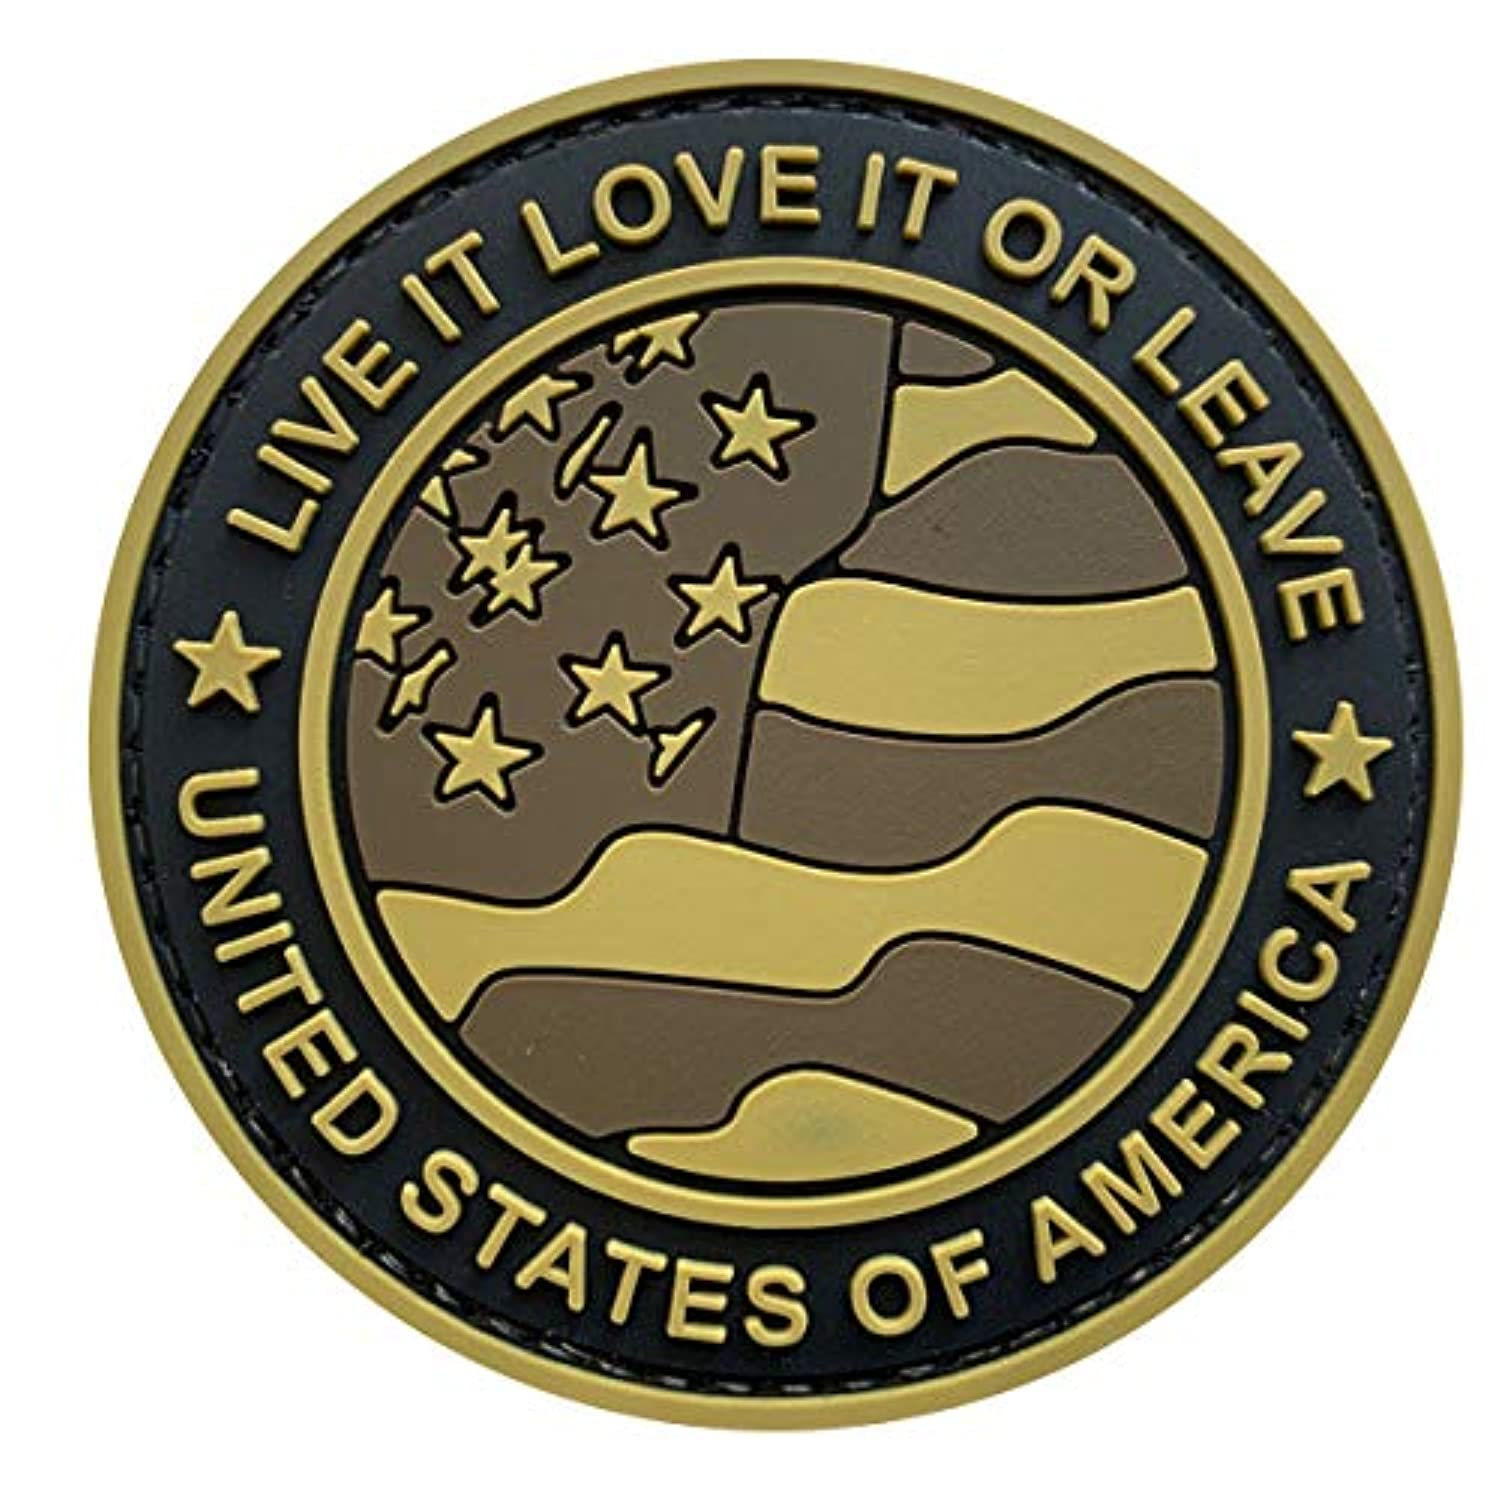 "Uuken Live It Love It or Leave Military American Flag 3"" Tactical Morale Patch Hook Backing for Military Uniforms (YLLL-TAN)"